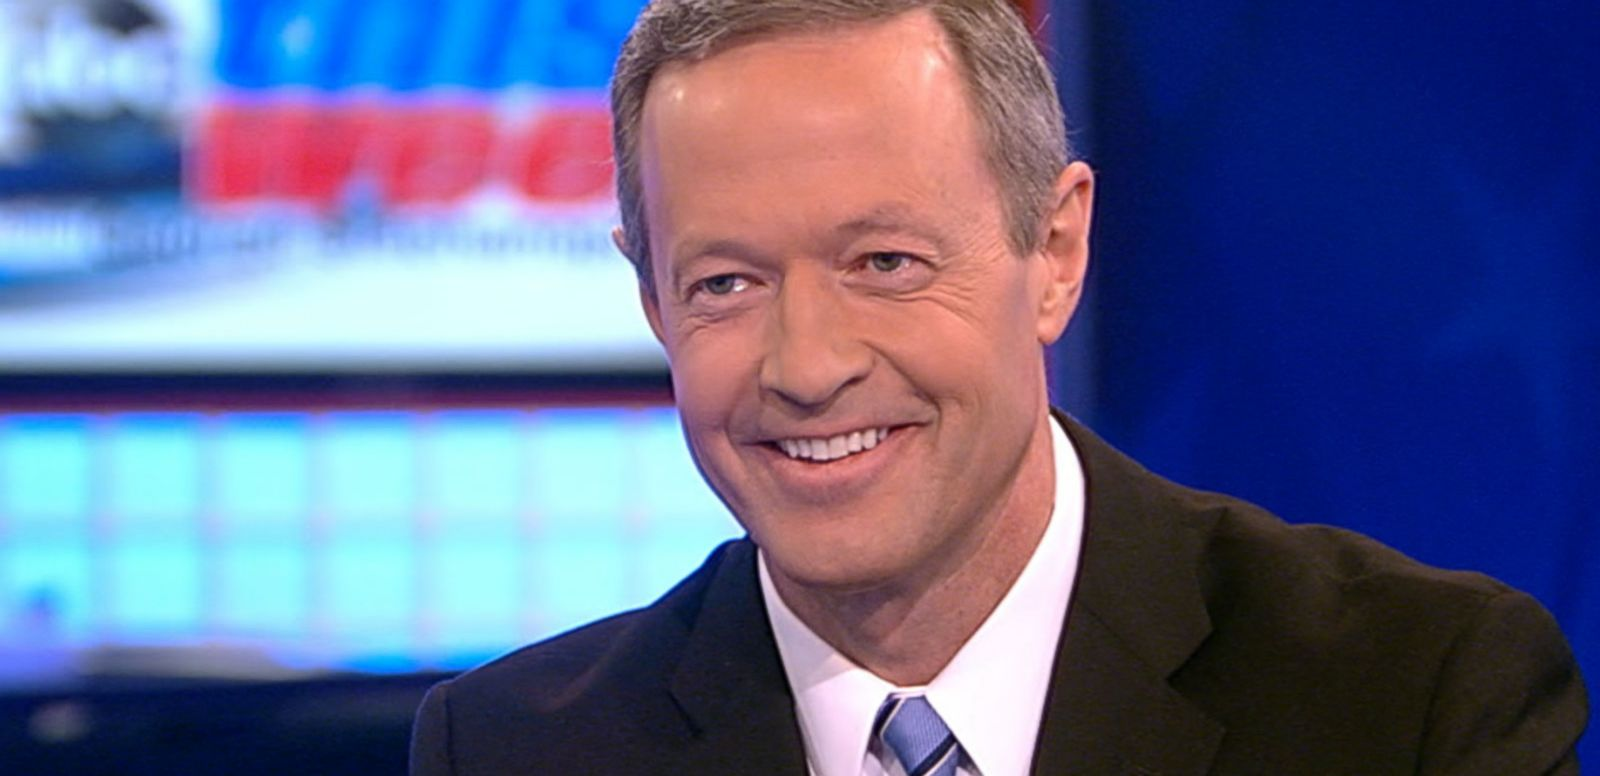 VIDEO: Gov. Martin O'Malley on a Potential 2016 Run